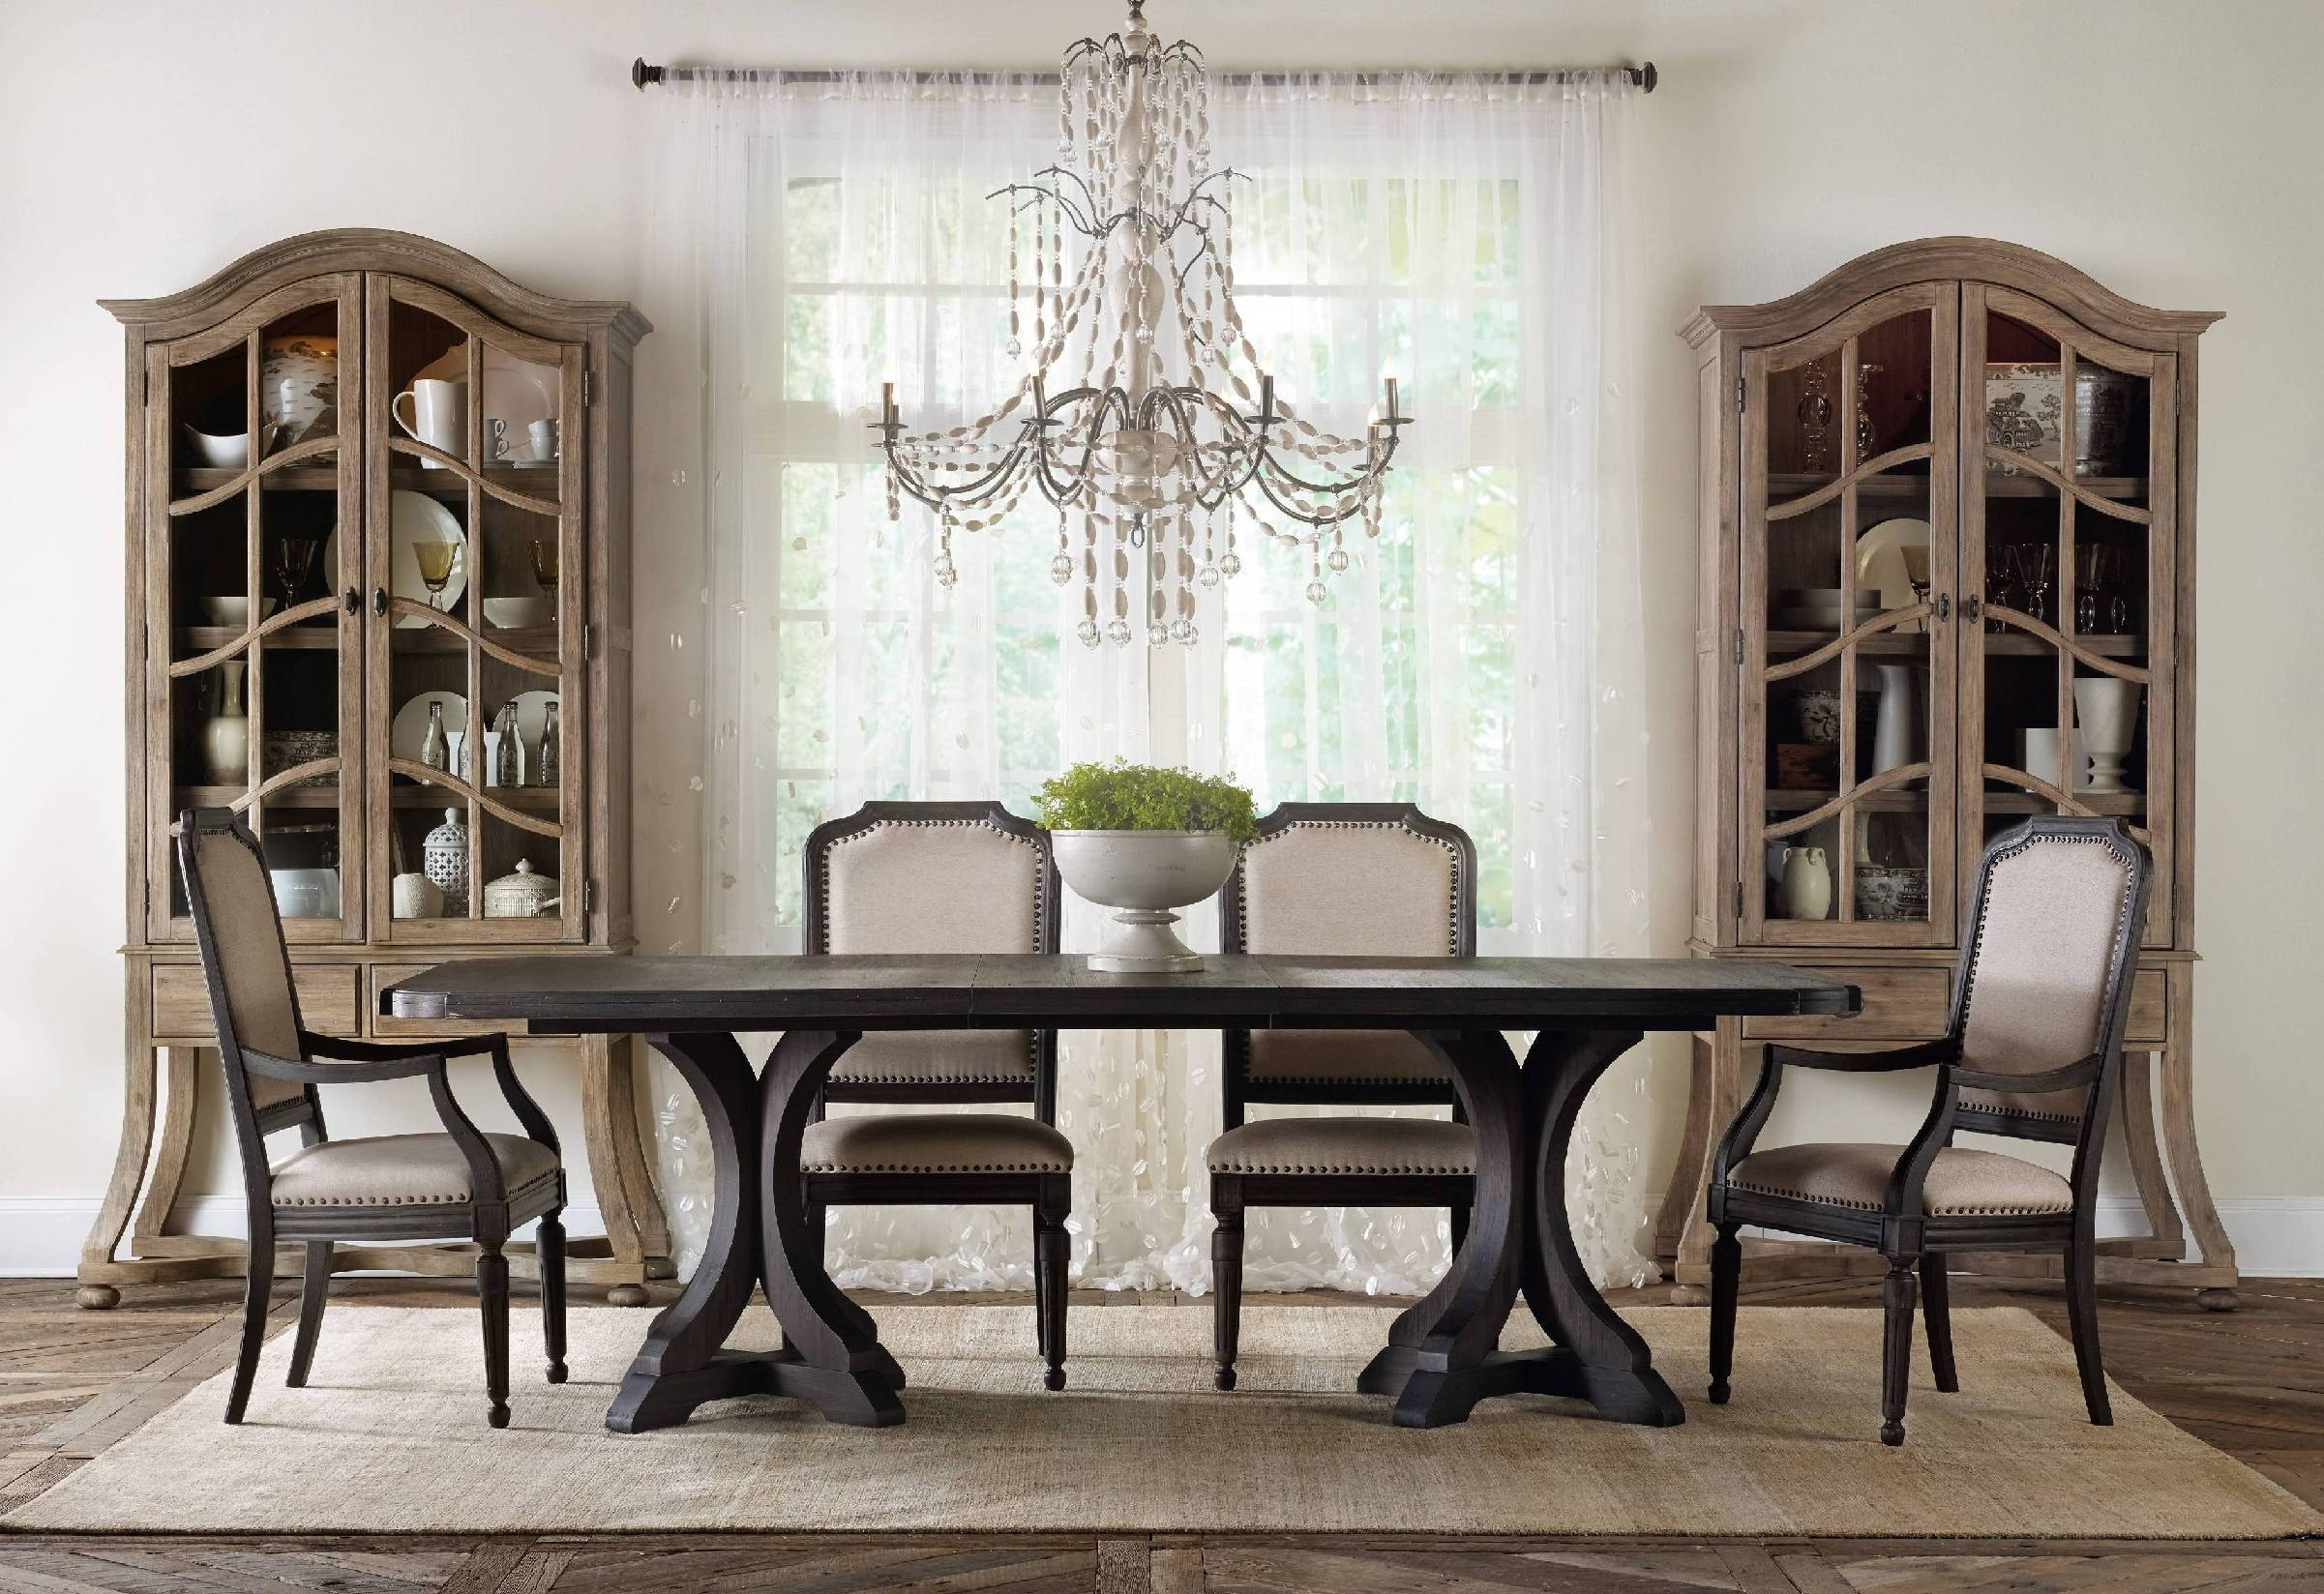 Dining Table With 2 Chairs Hooker Furniture Dining Room Corsica Dark Rectangle Pedestal